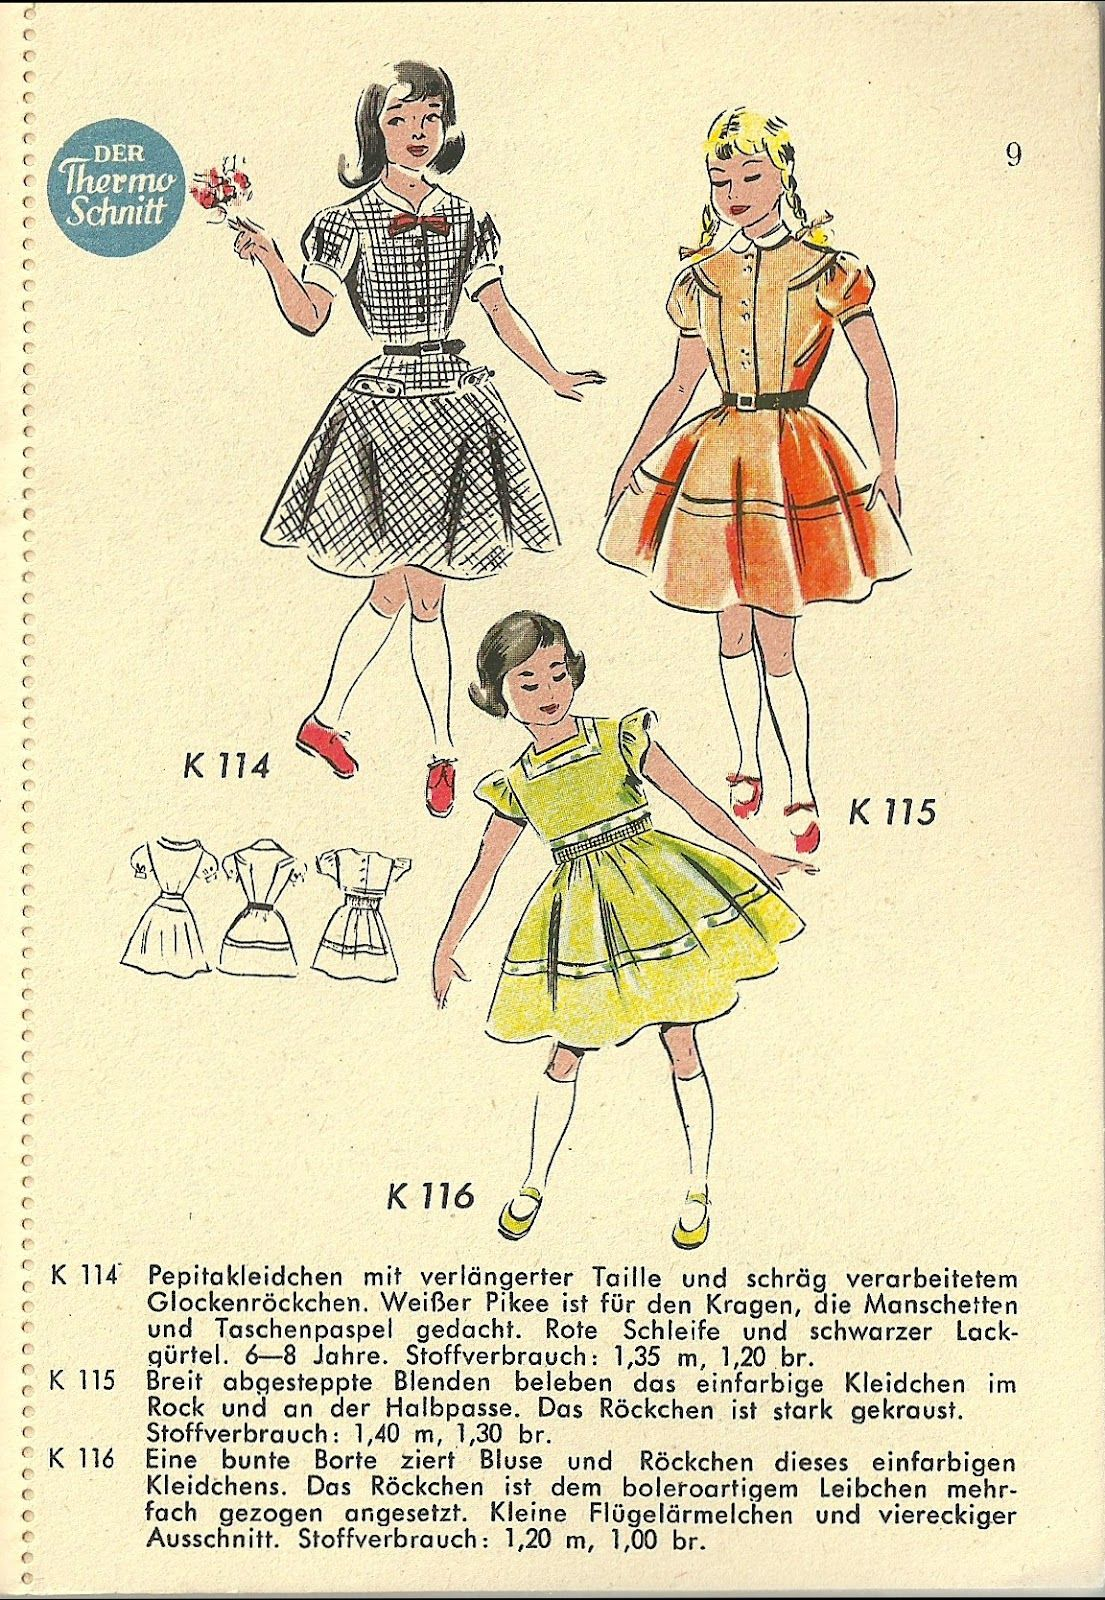 The Hausfrau Journal: 1950s Children's Fashions from East ...